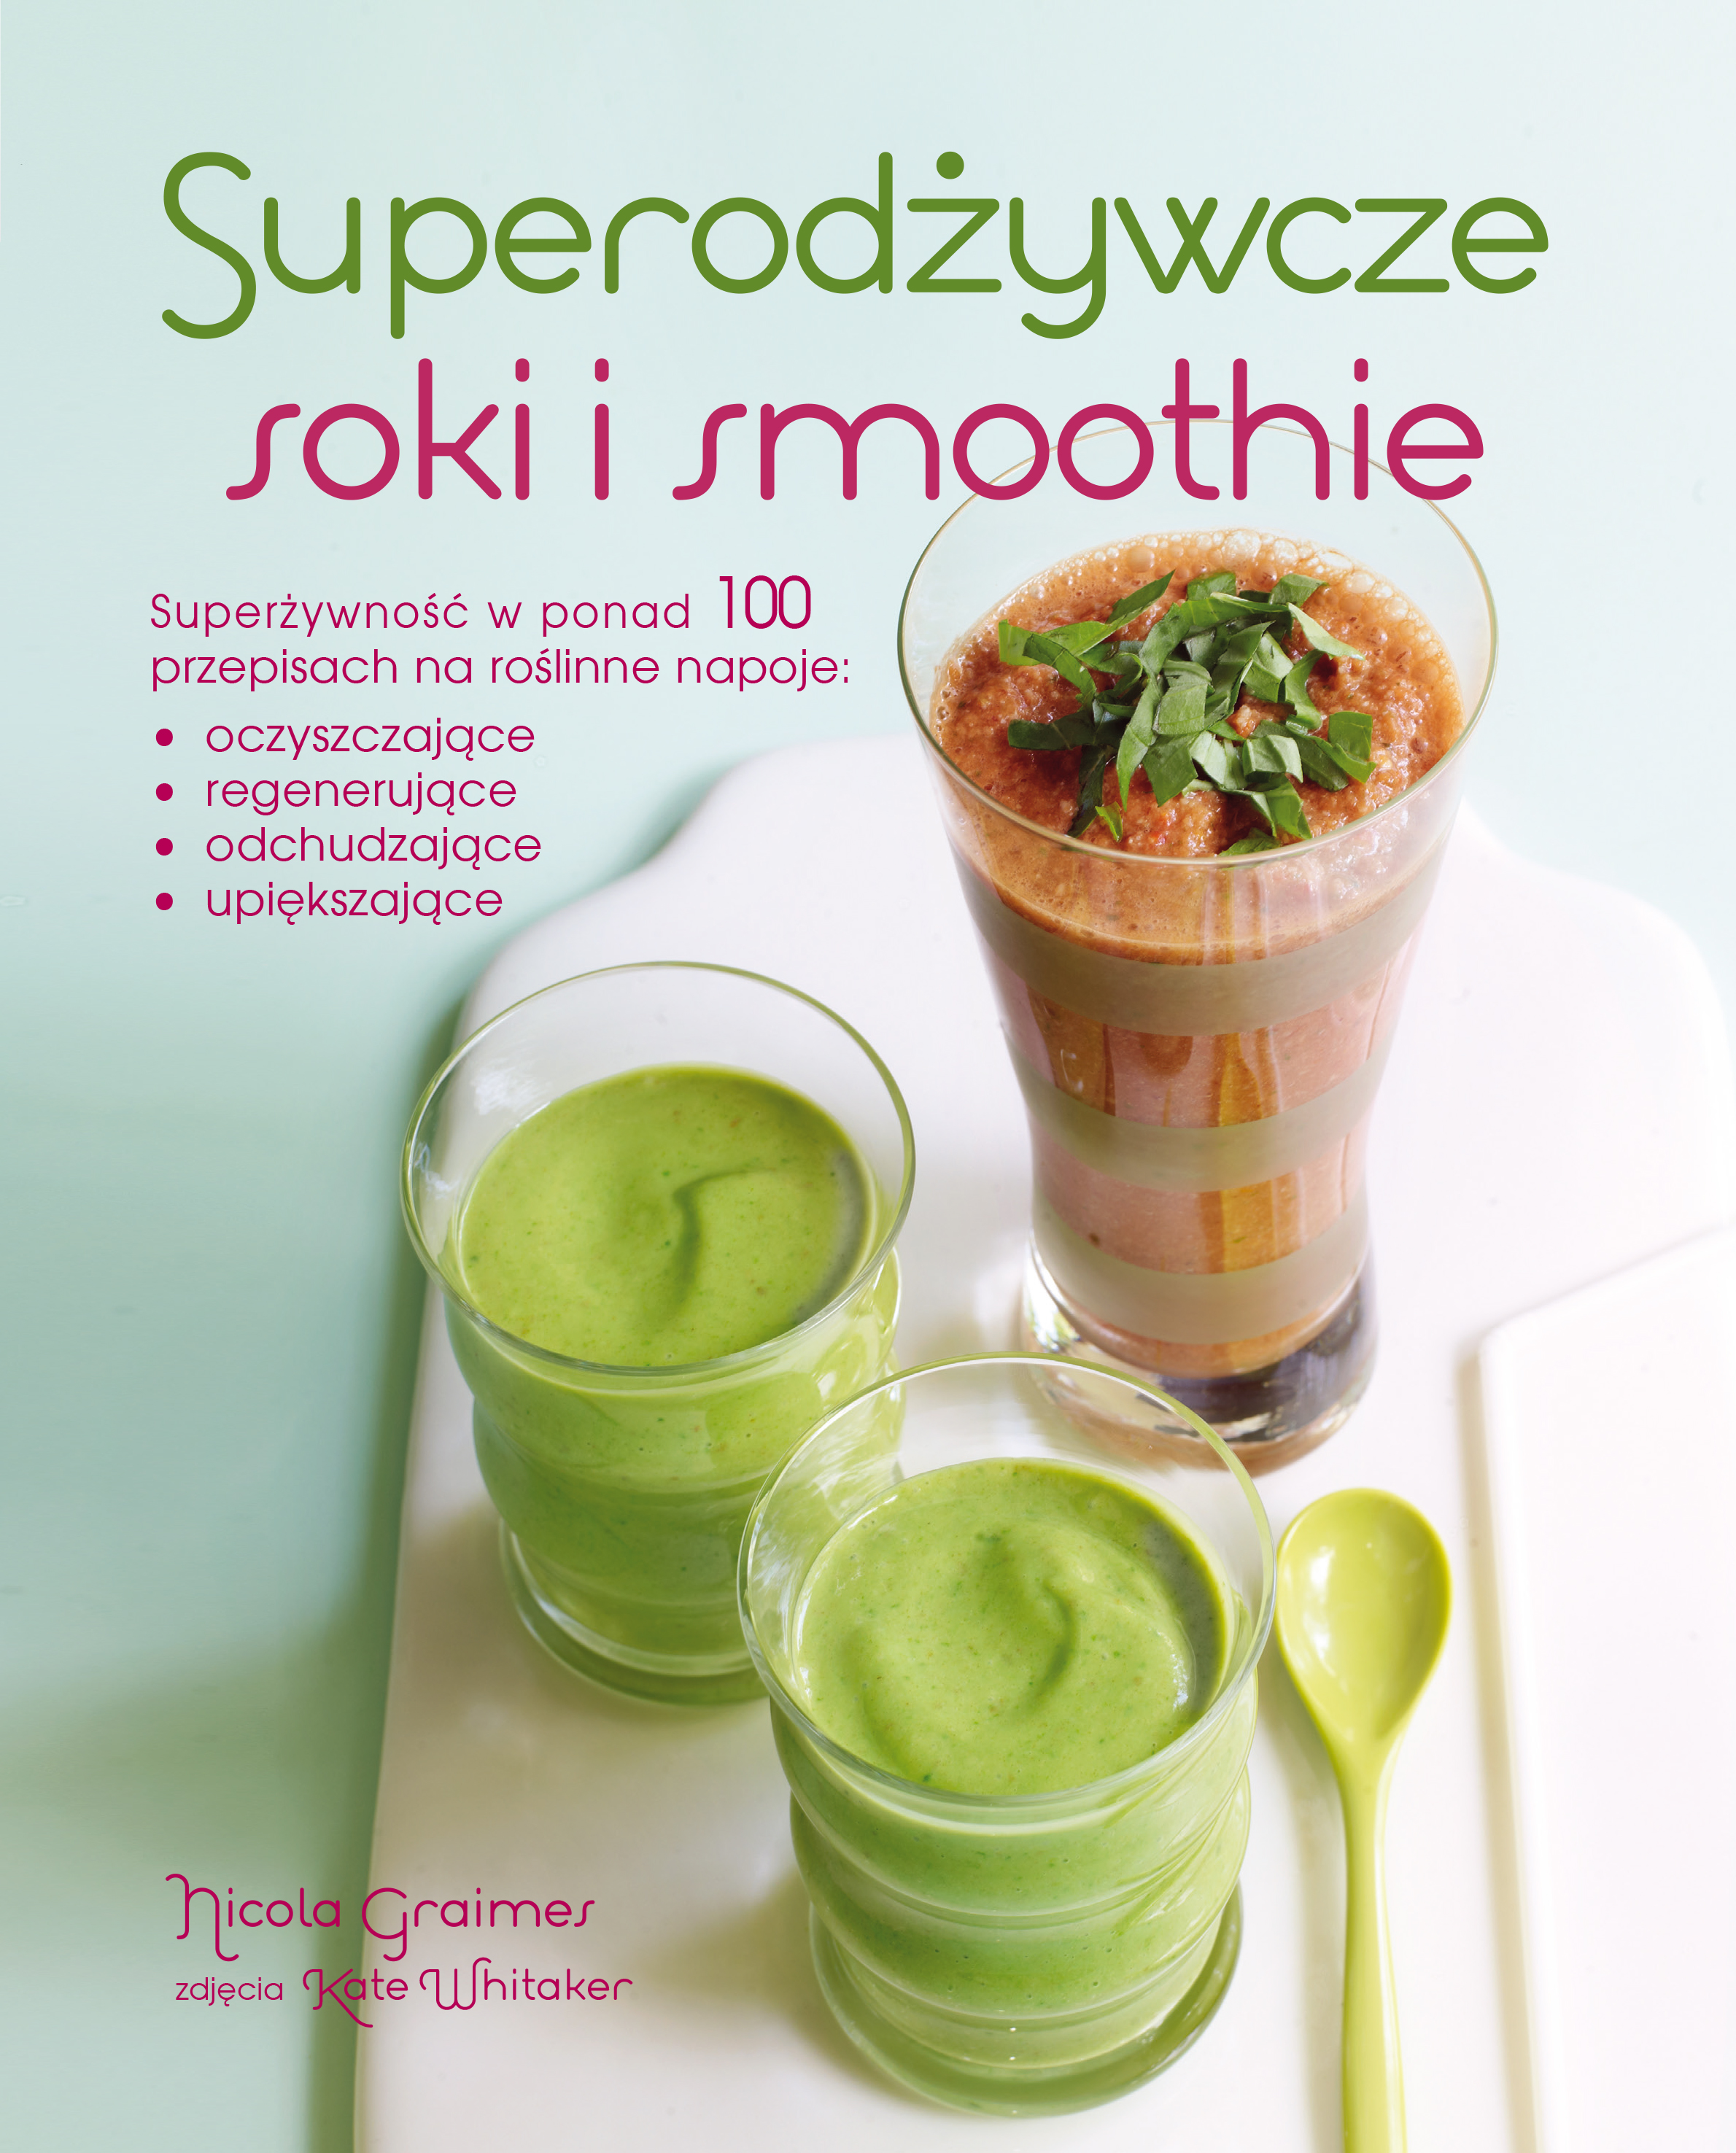 Superodżywcze soki i smoothie